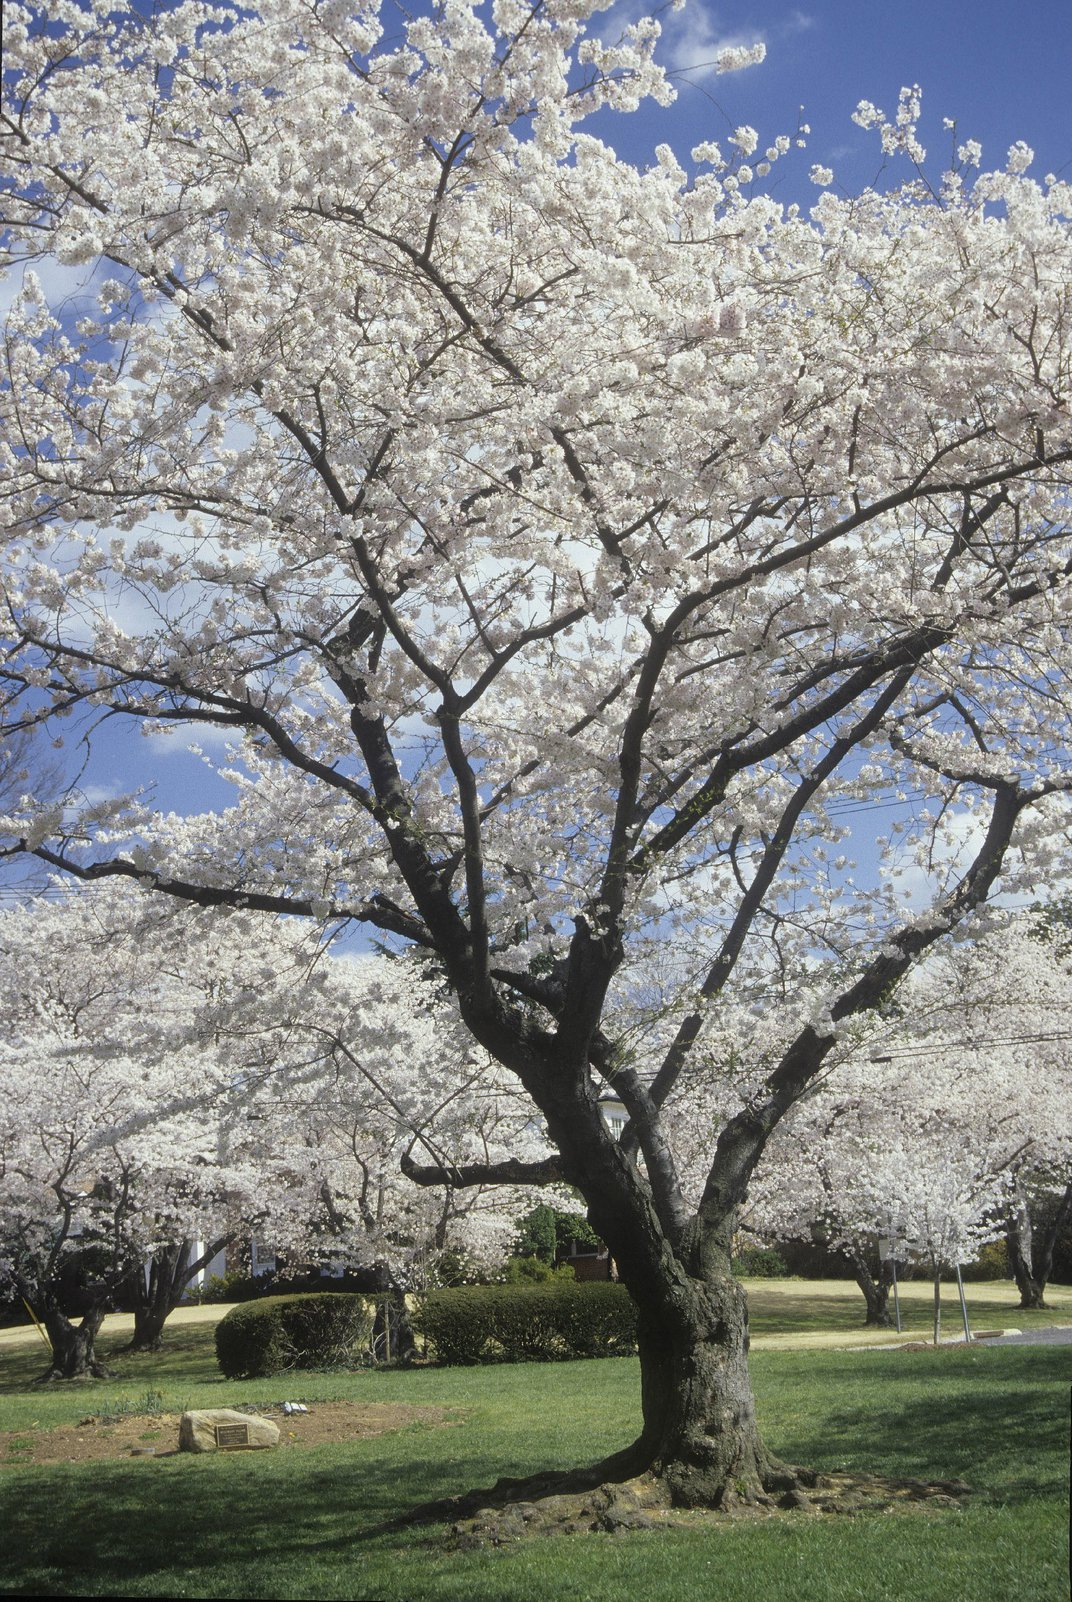 A cherry blossom tree in bloom on a sunny day.